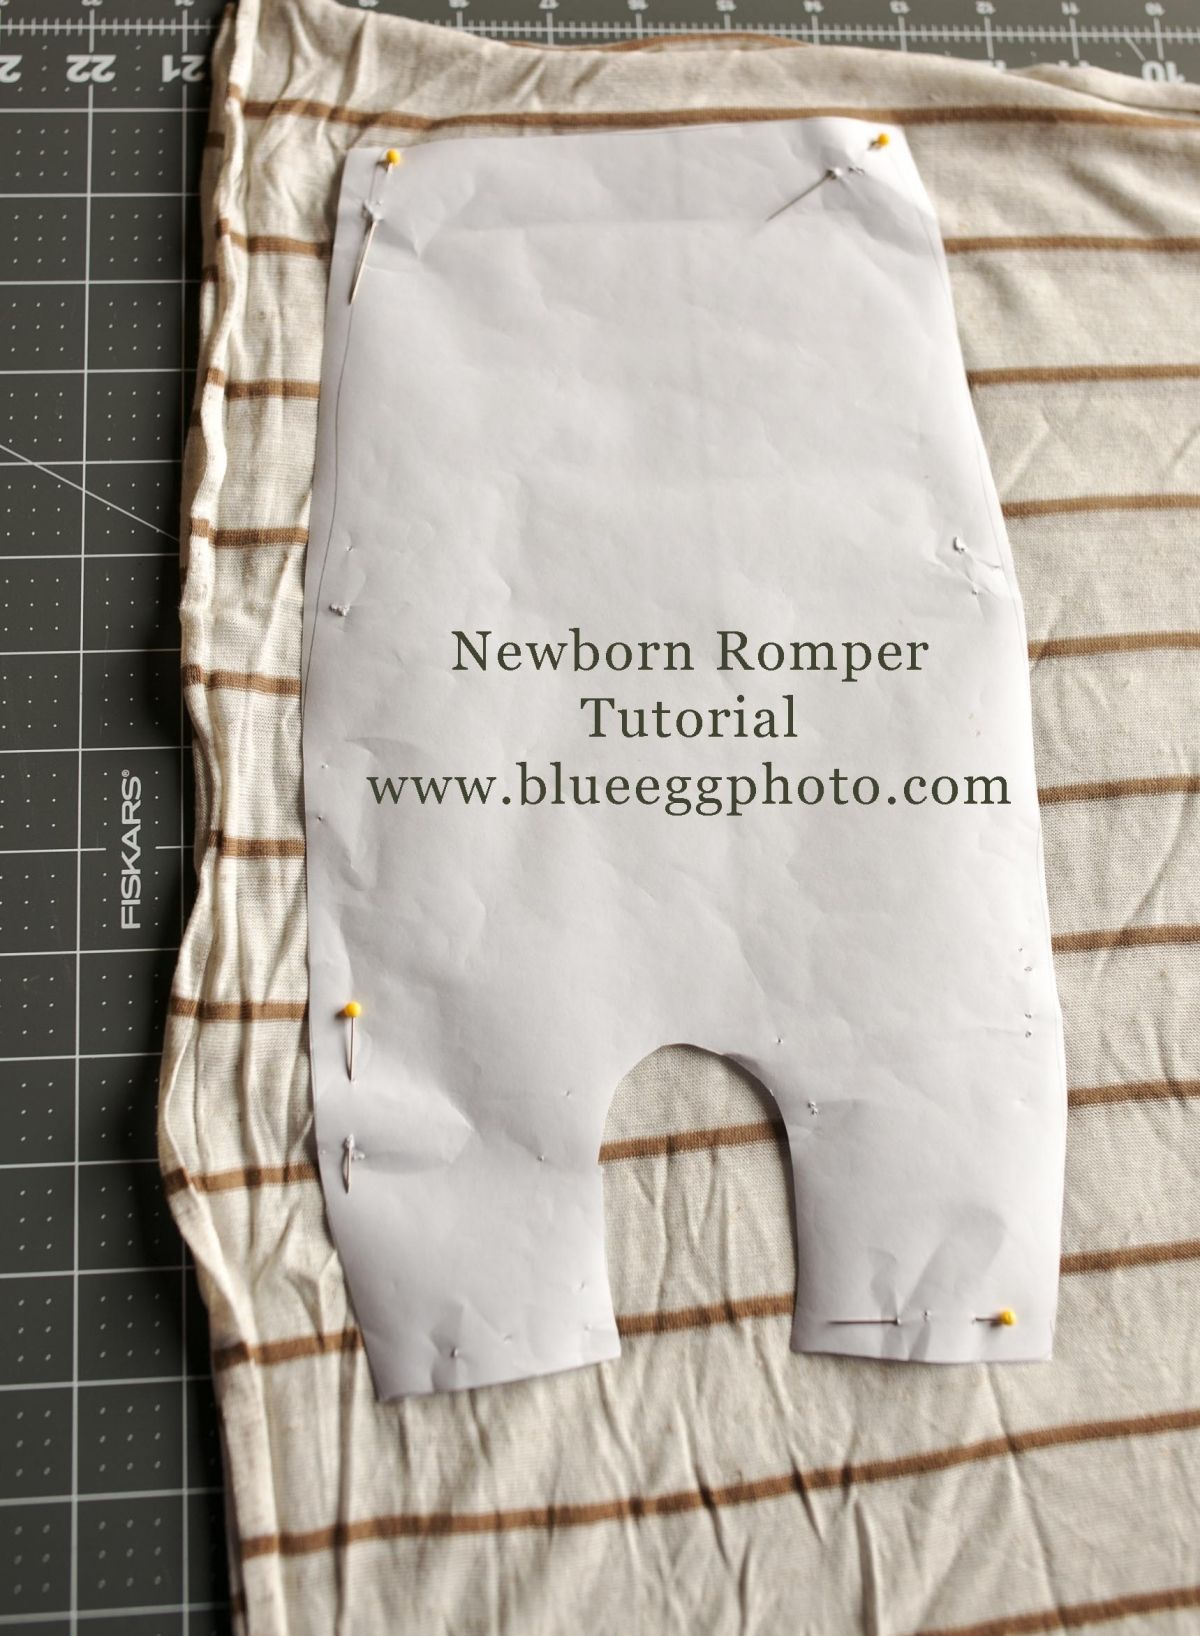 Newborn Romper Tutorial Upcycle From An Old Sweater And